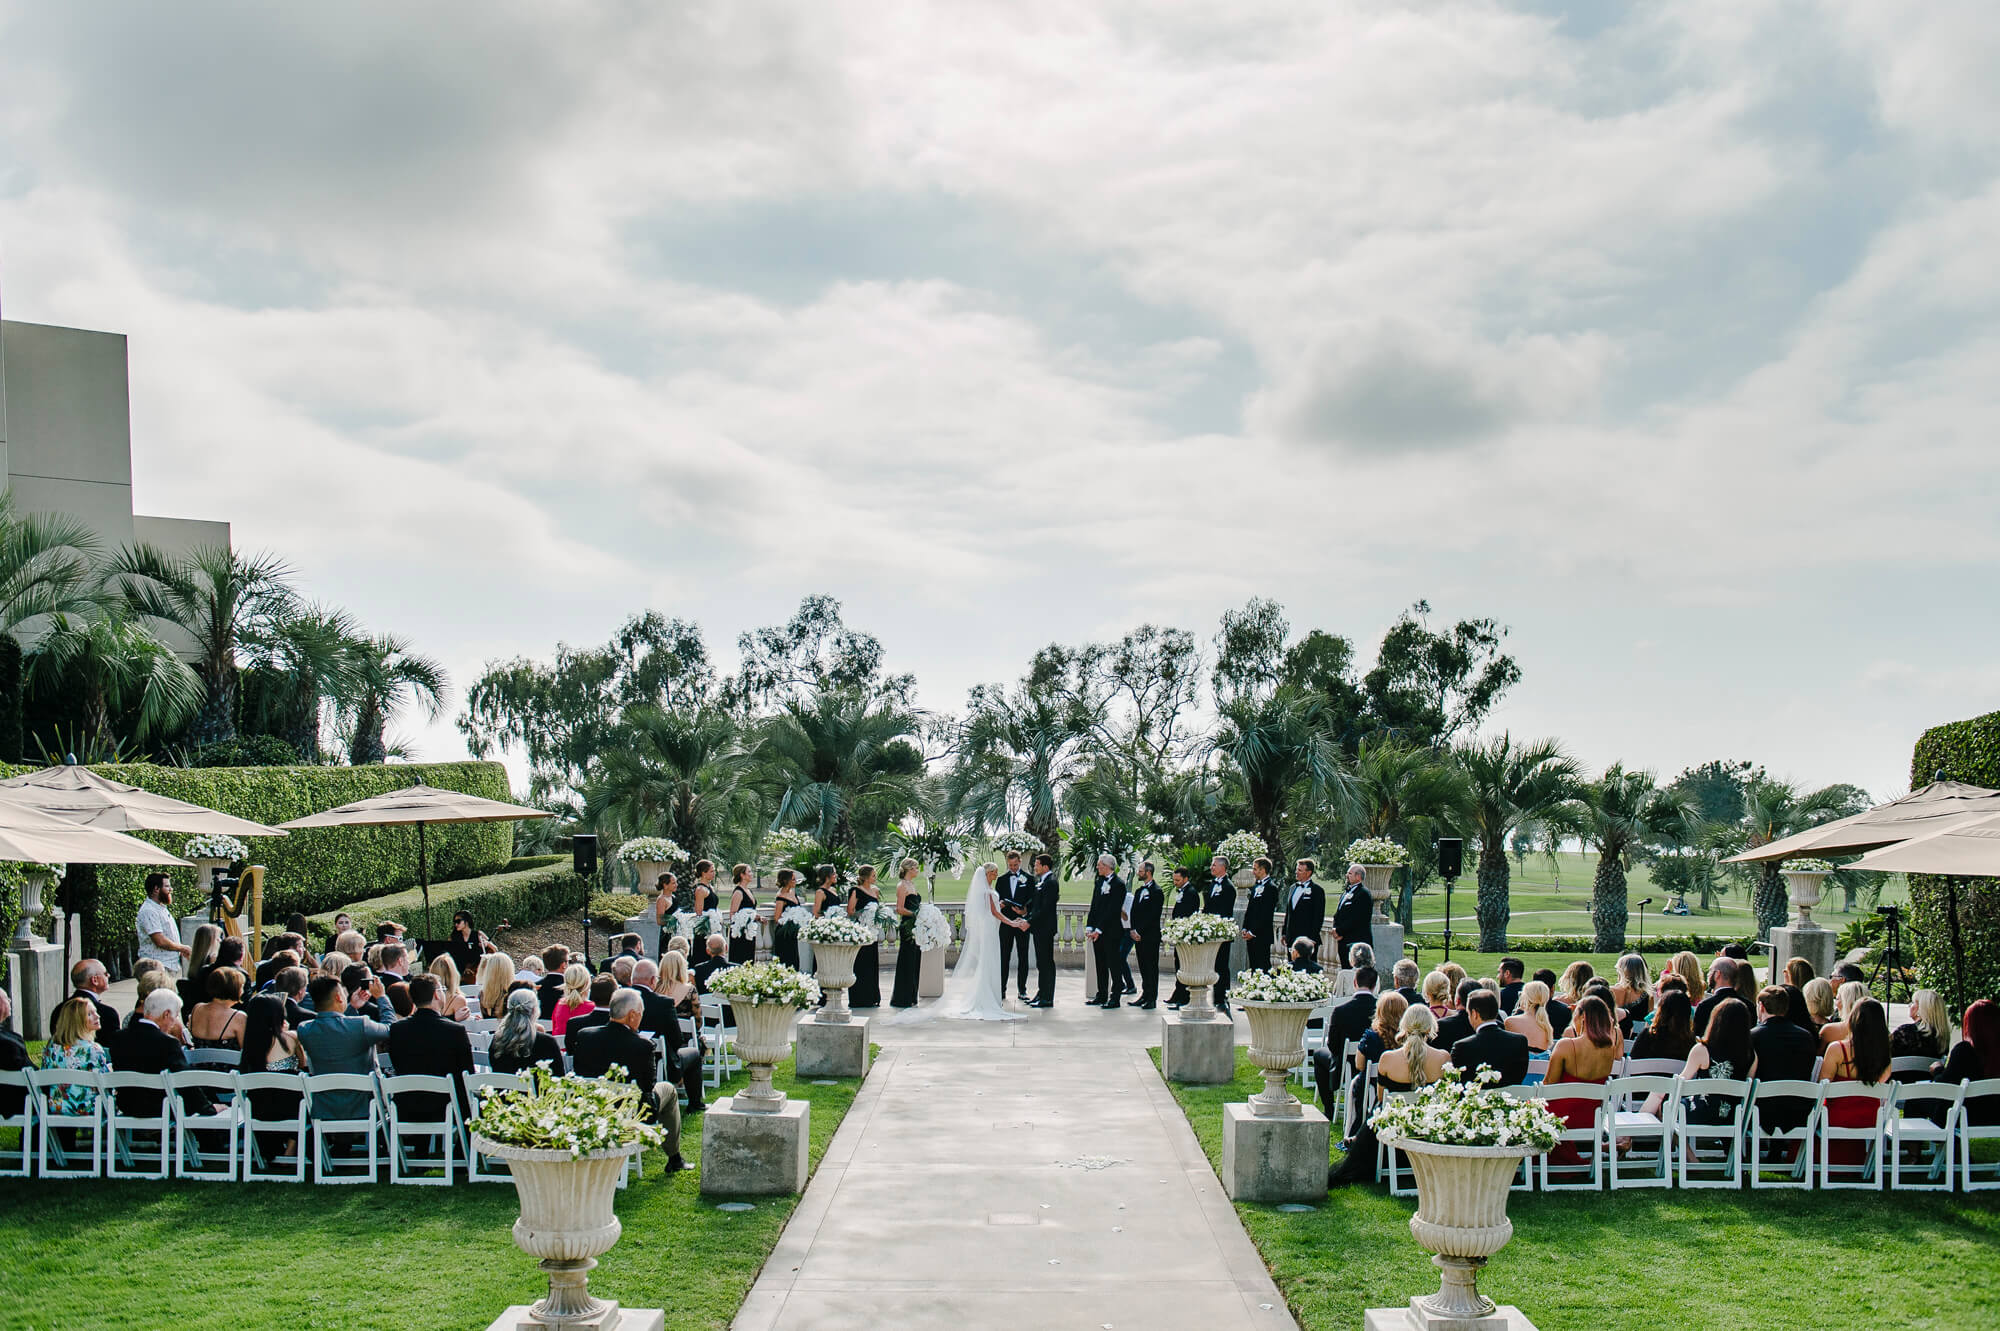 hilton-torrey-pines-la-jolla-wedding-san-diego-photographer-11.JPG